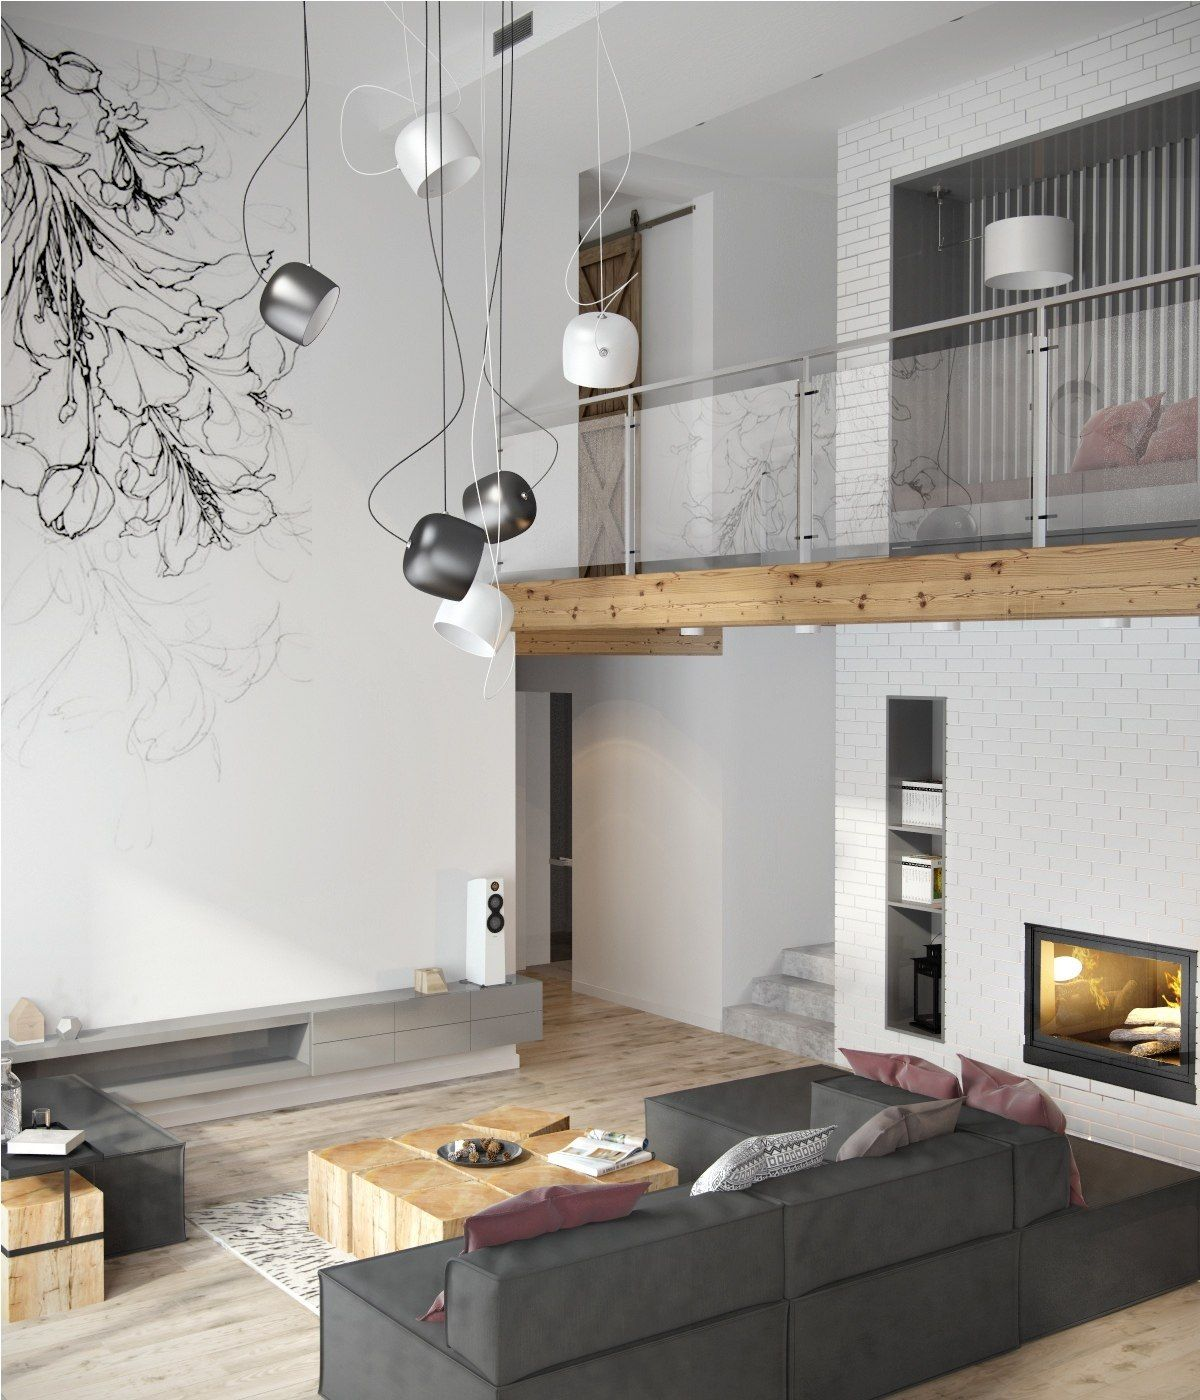 Apartment Decorating Minimalist minimalist apartment decorating ideas with gray color shade and